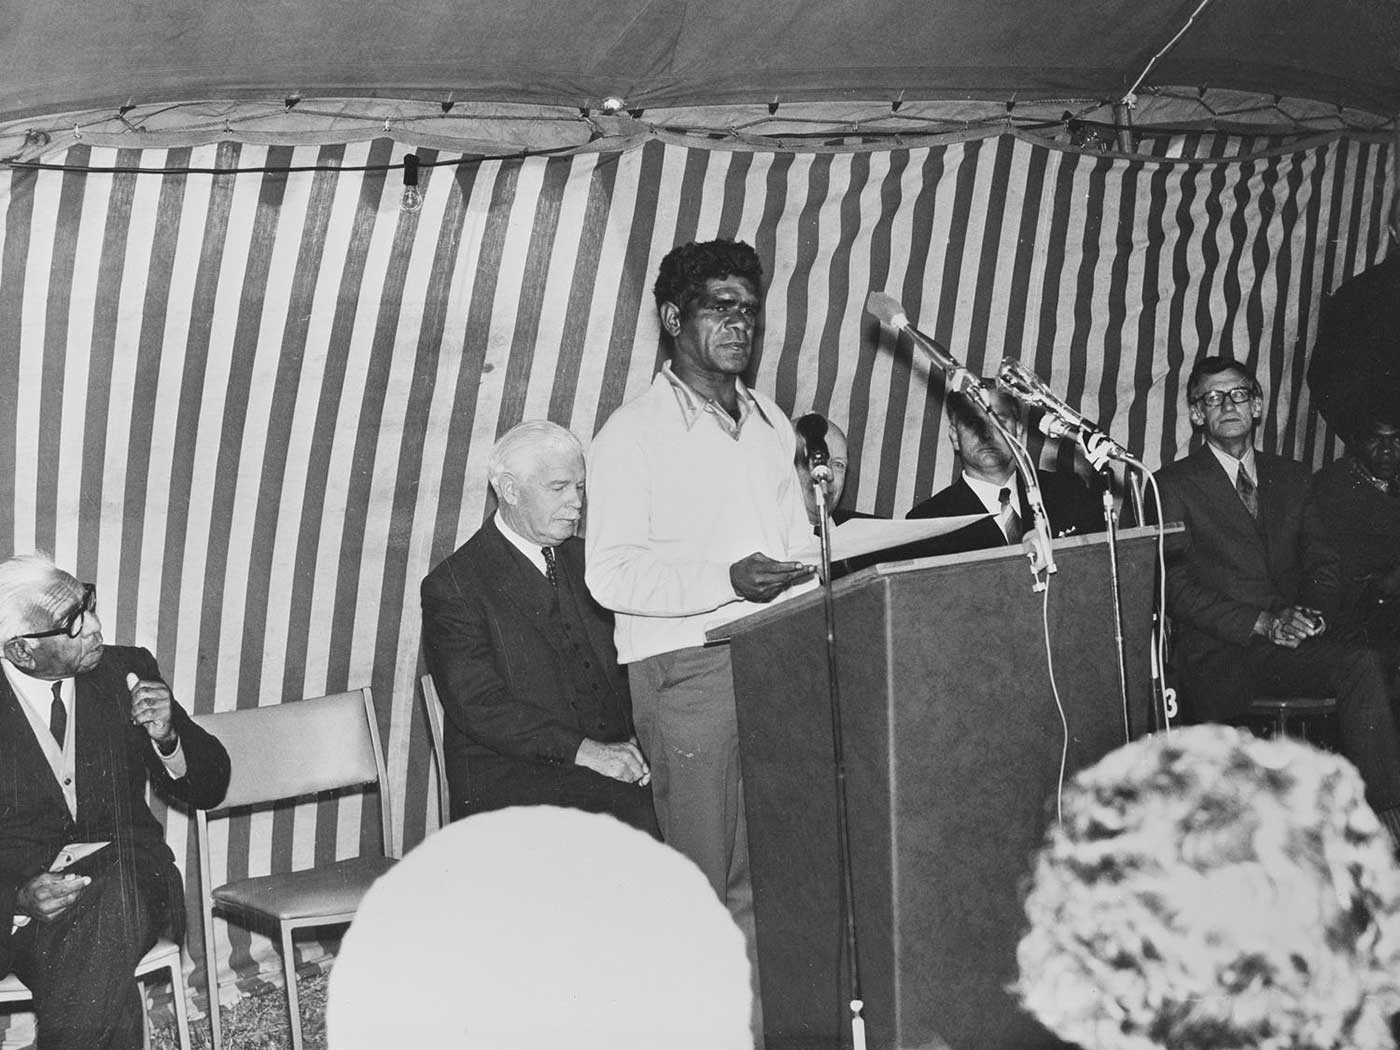 Black and white photo of a man standing at a podium and speaking to an audience. There are several other male officials sitting behind him.